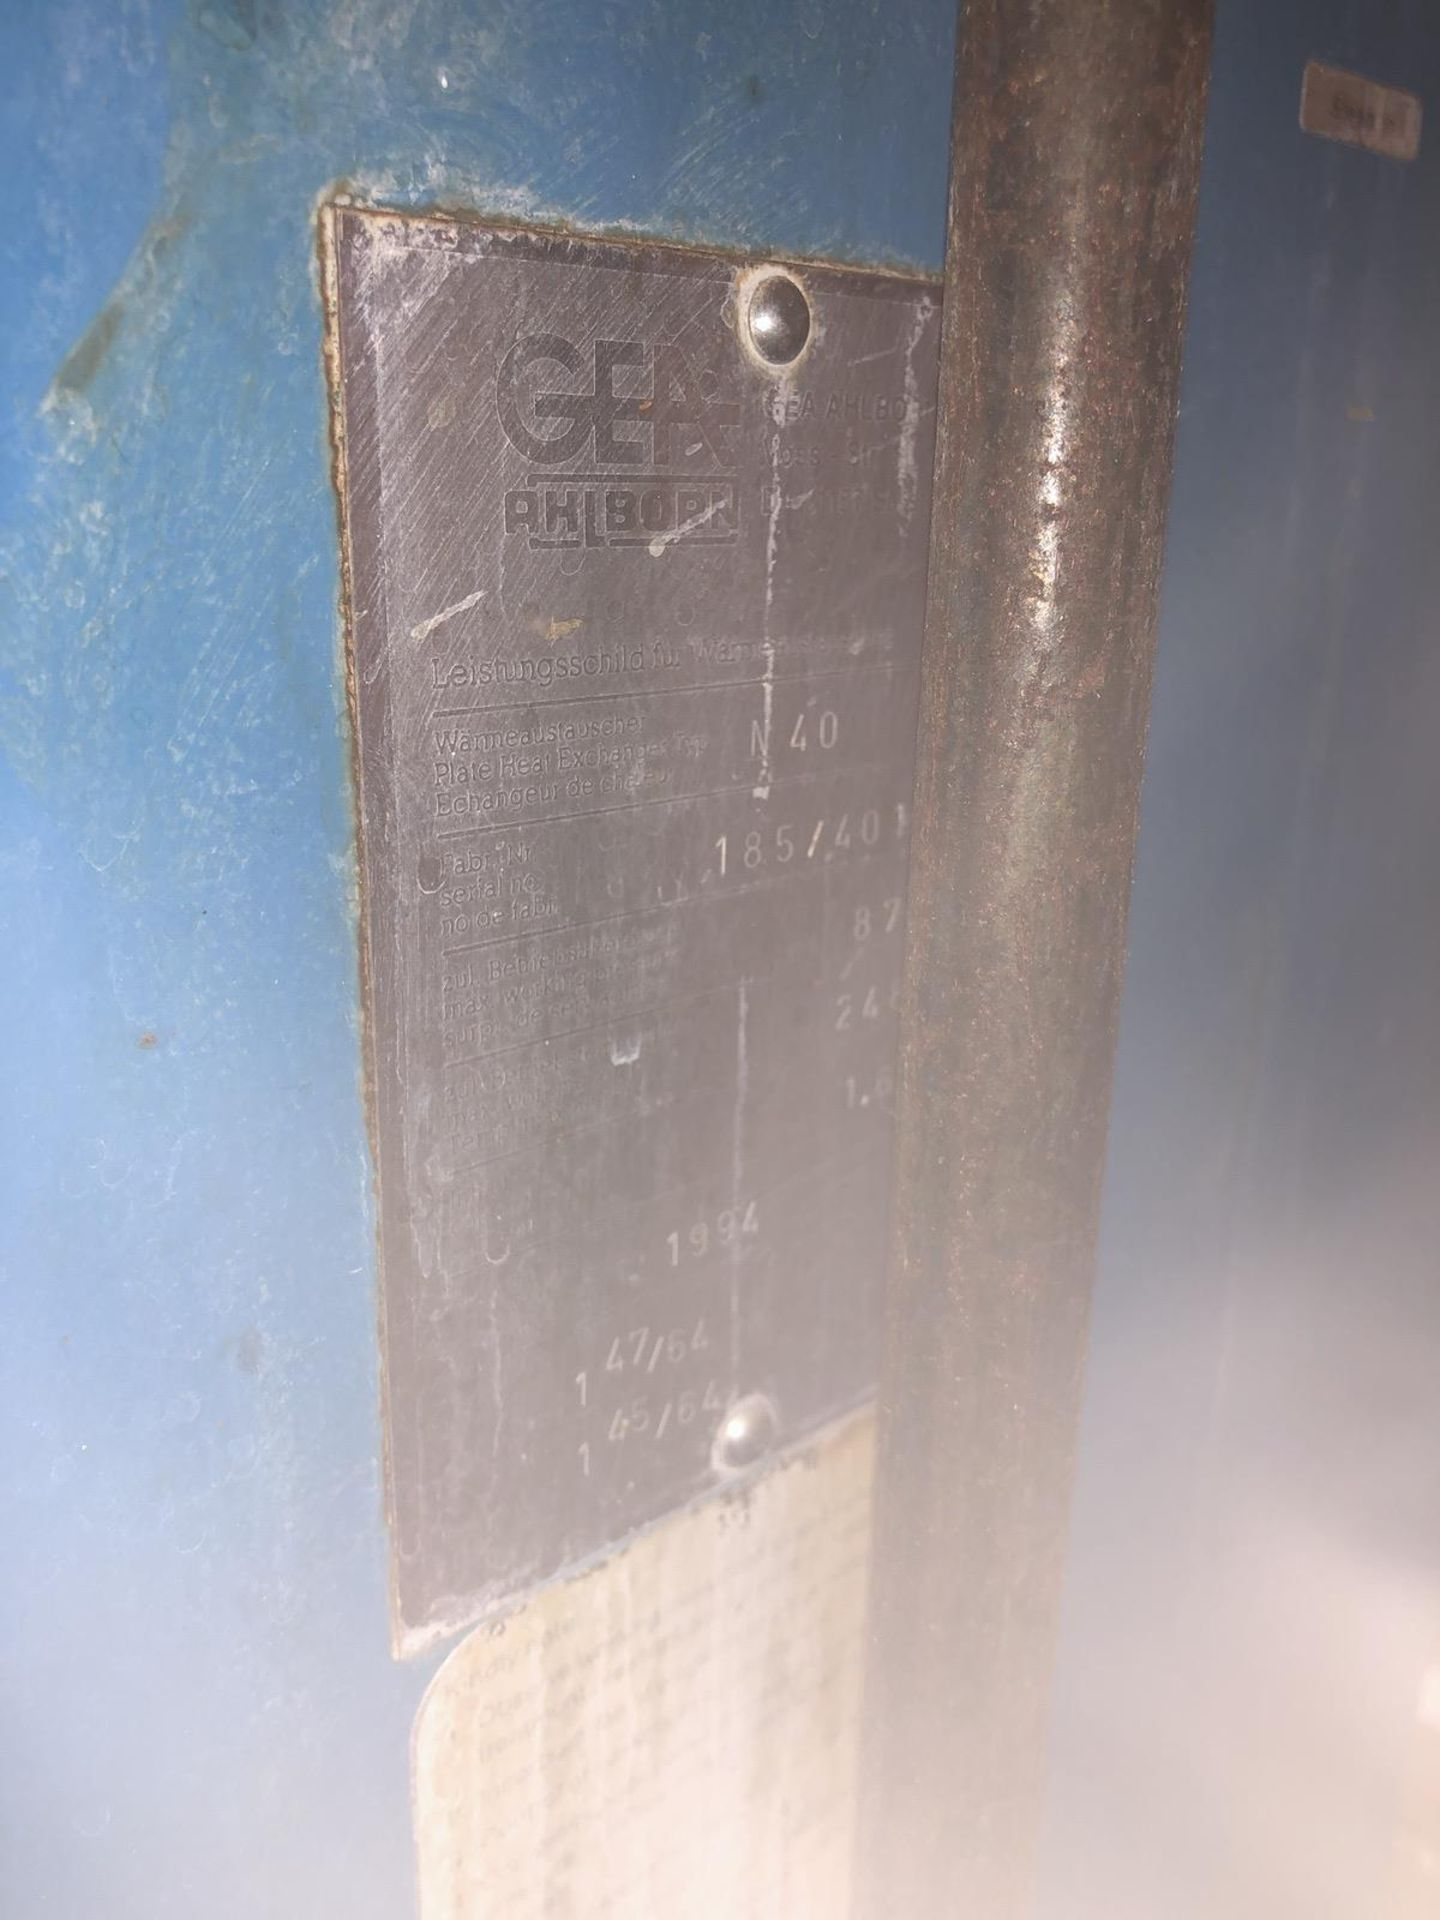 Lot 33 - GEA Plate and Frame Heat Exchanger, Type N40, S/N: 185/401 | Rig Fee: $300